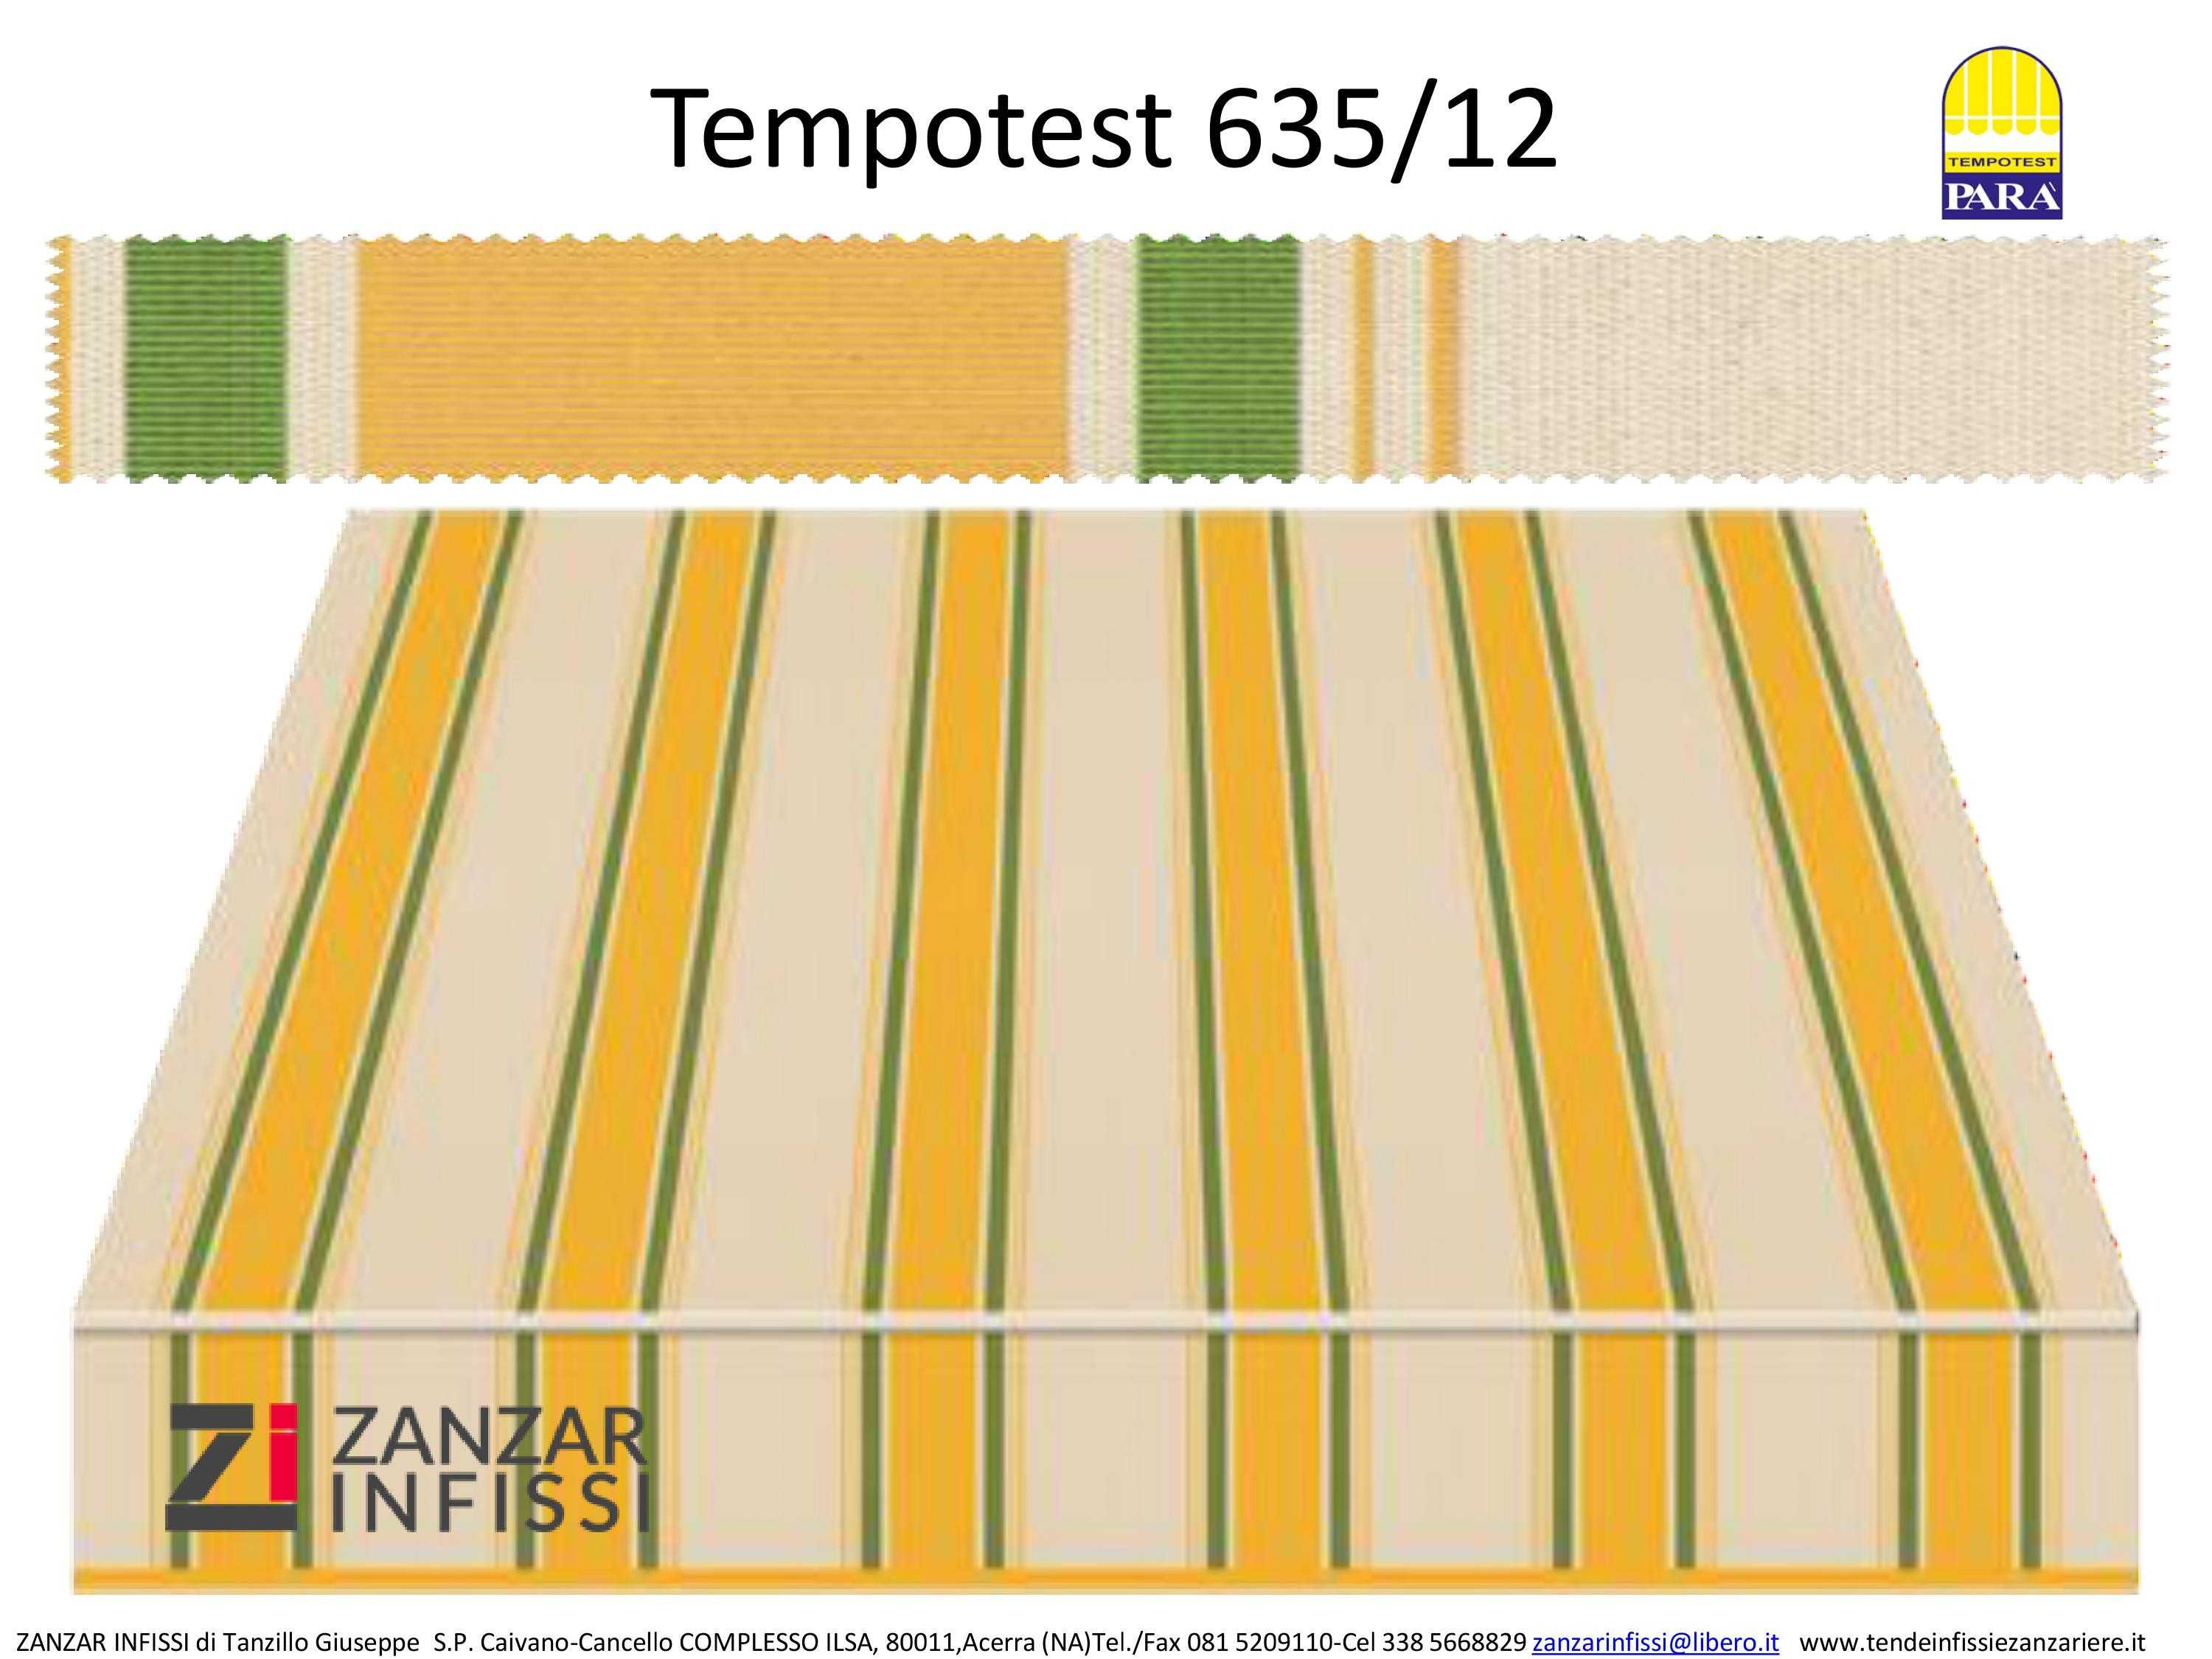 Tempotest 635/12